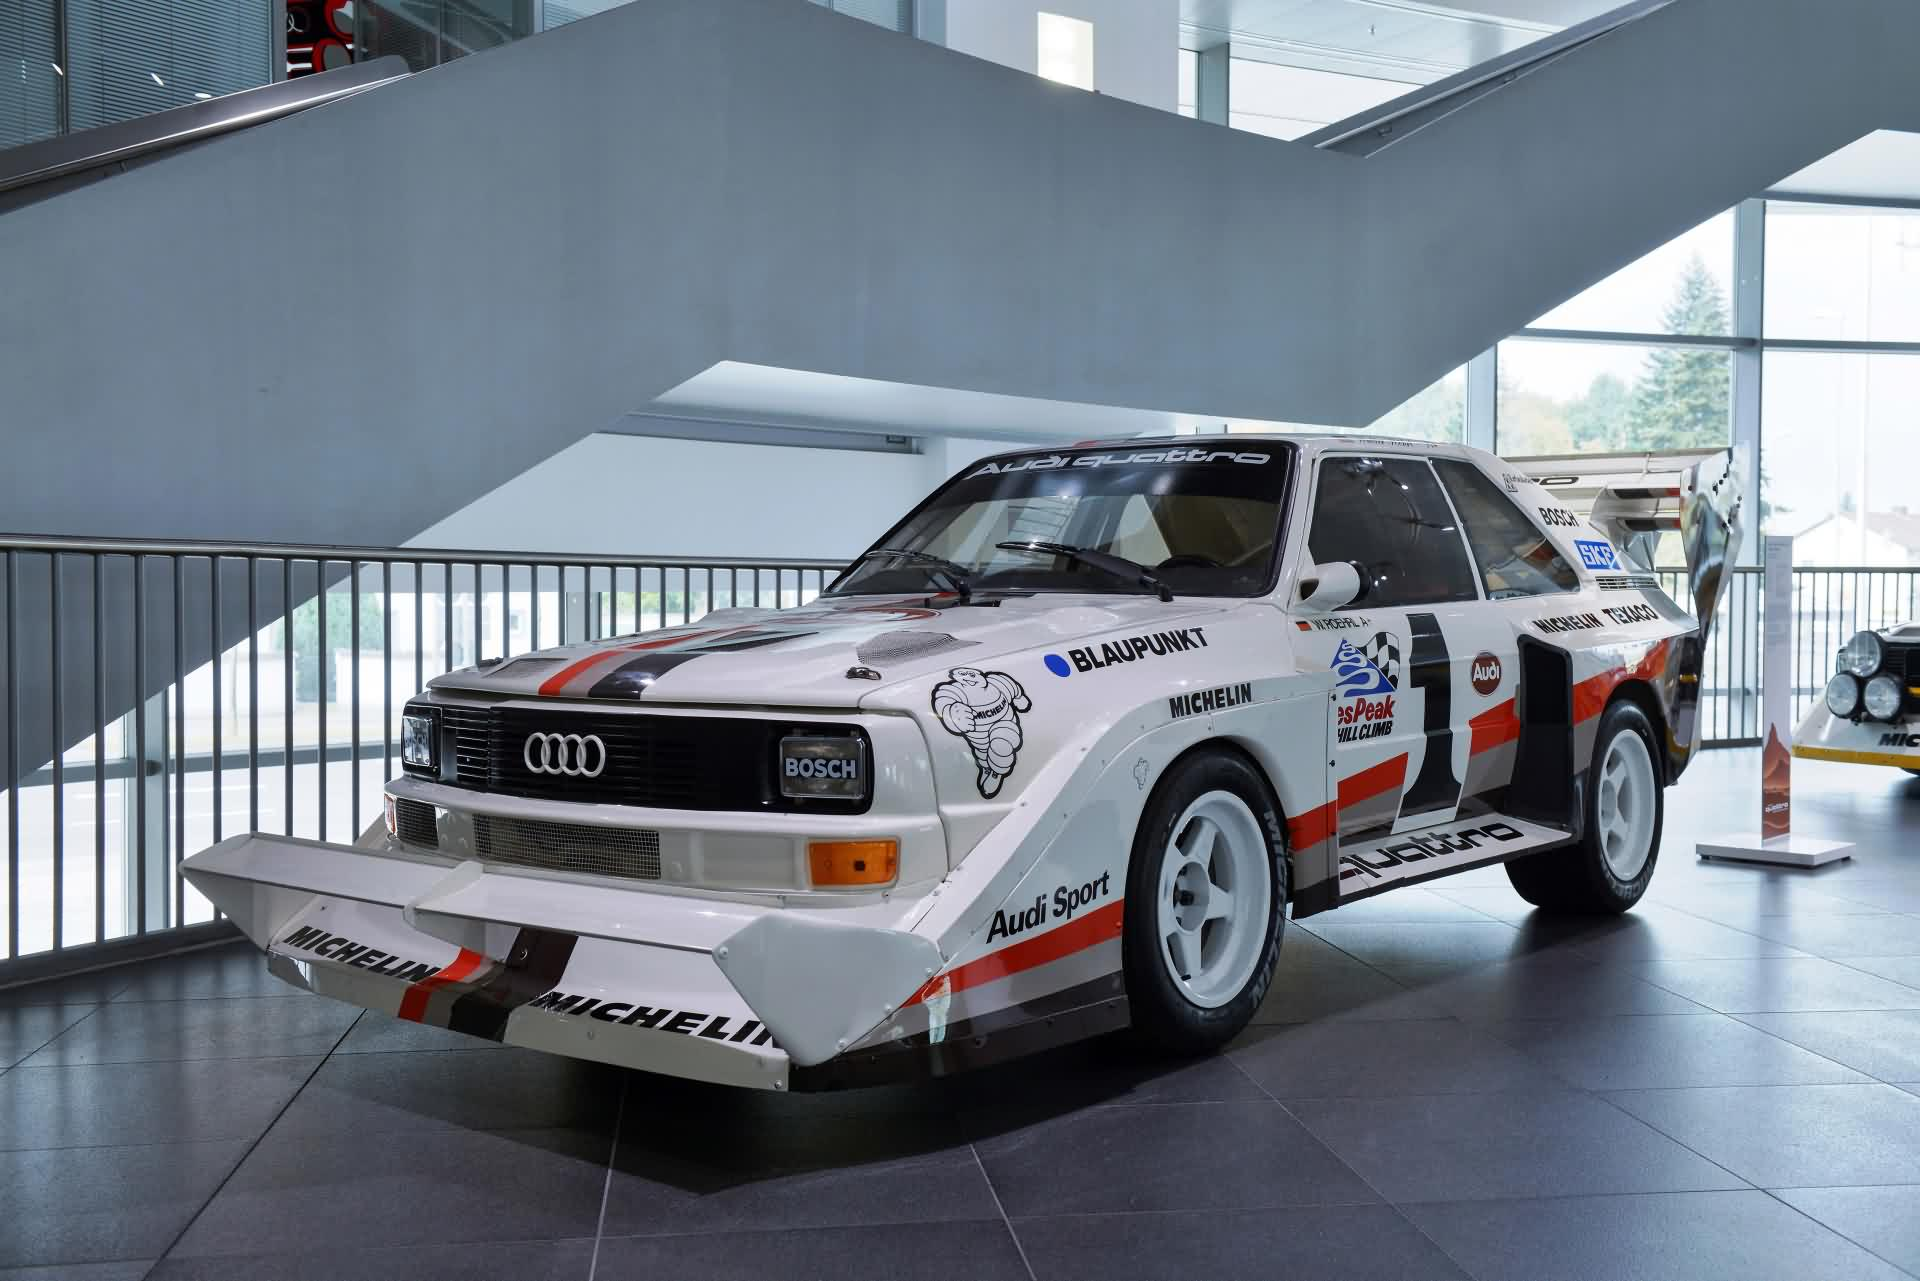 1985 1986 bj audi sport quattro s1. Black Bedroom Furniture Sets. Home Design Ideas